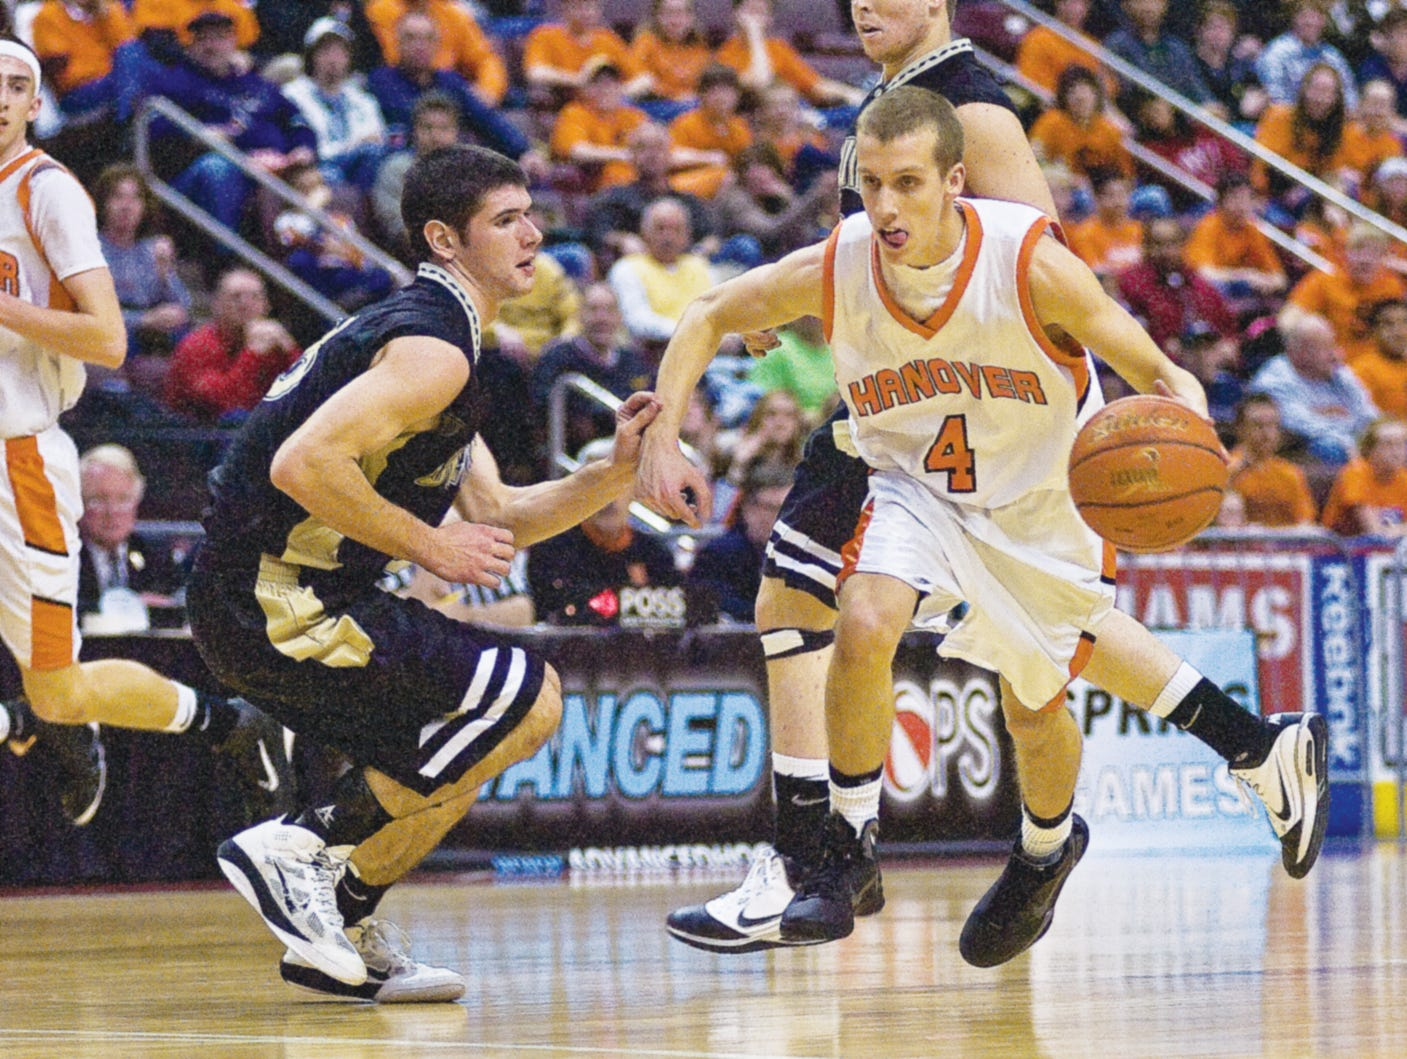 In this file photo from 2011, Delone Catholic's Mark Staub attempts to defend against a drive down court by Hanover's Pete Yingst during Friday's District 3 championship game in Hershey.  Hanover took the title 54 to 51.